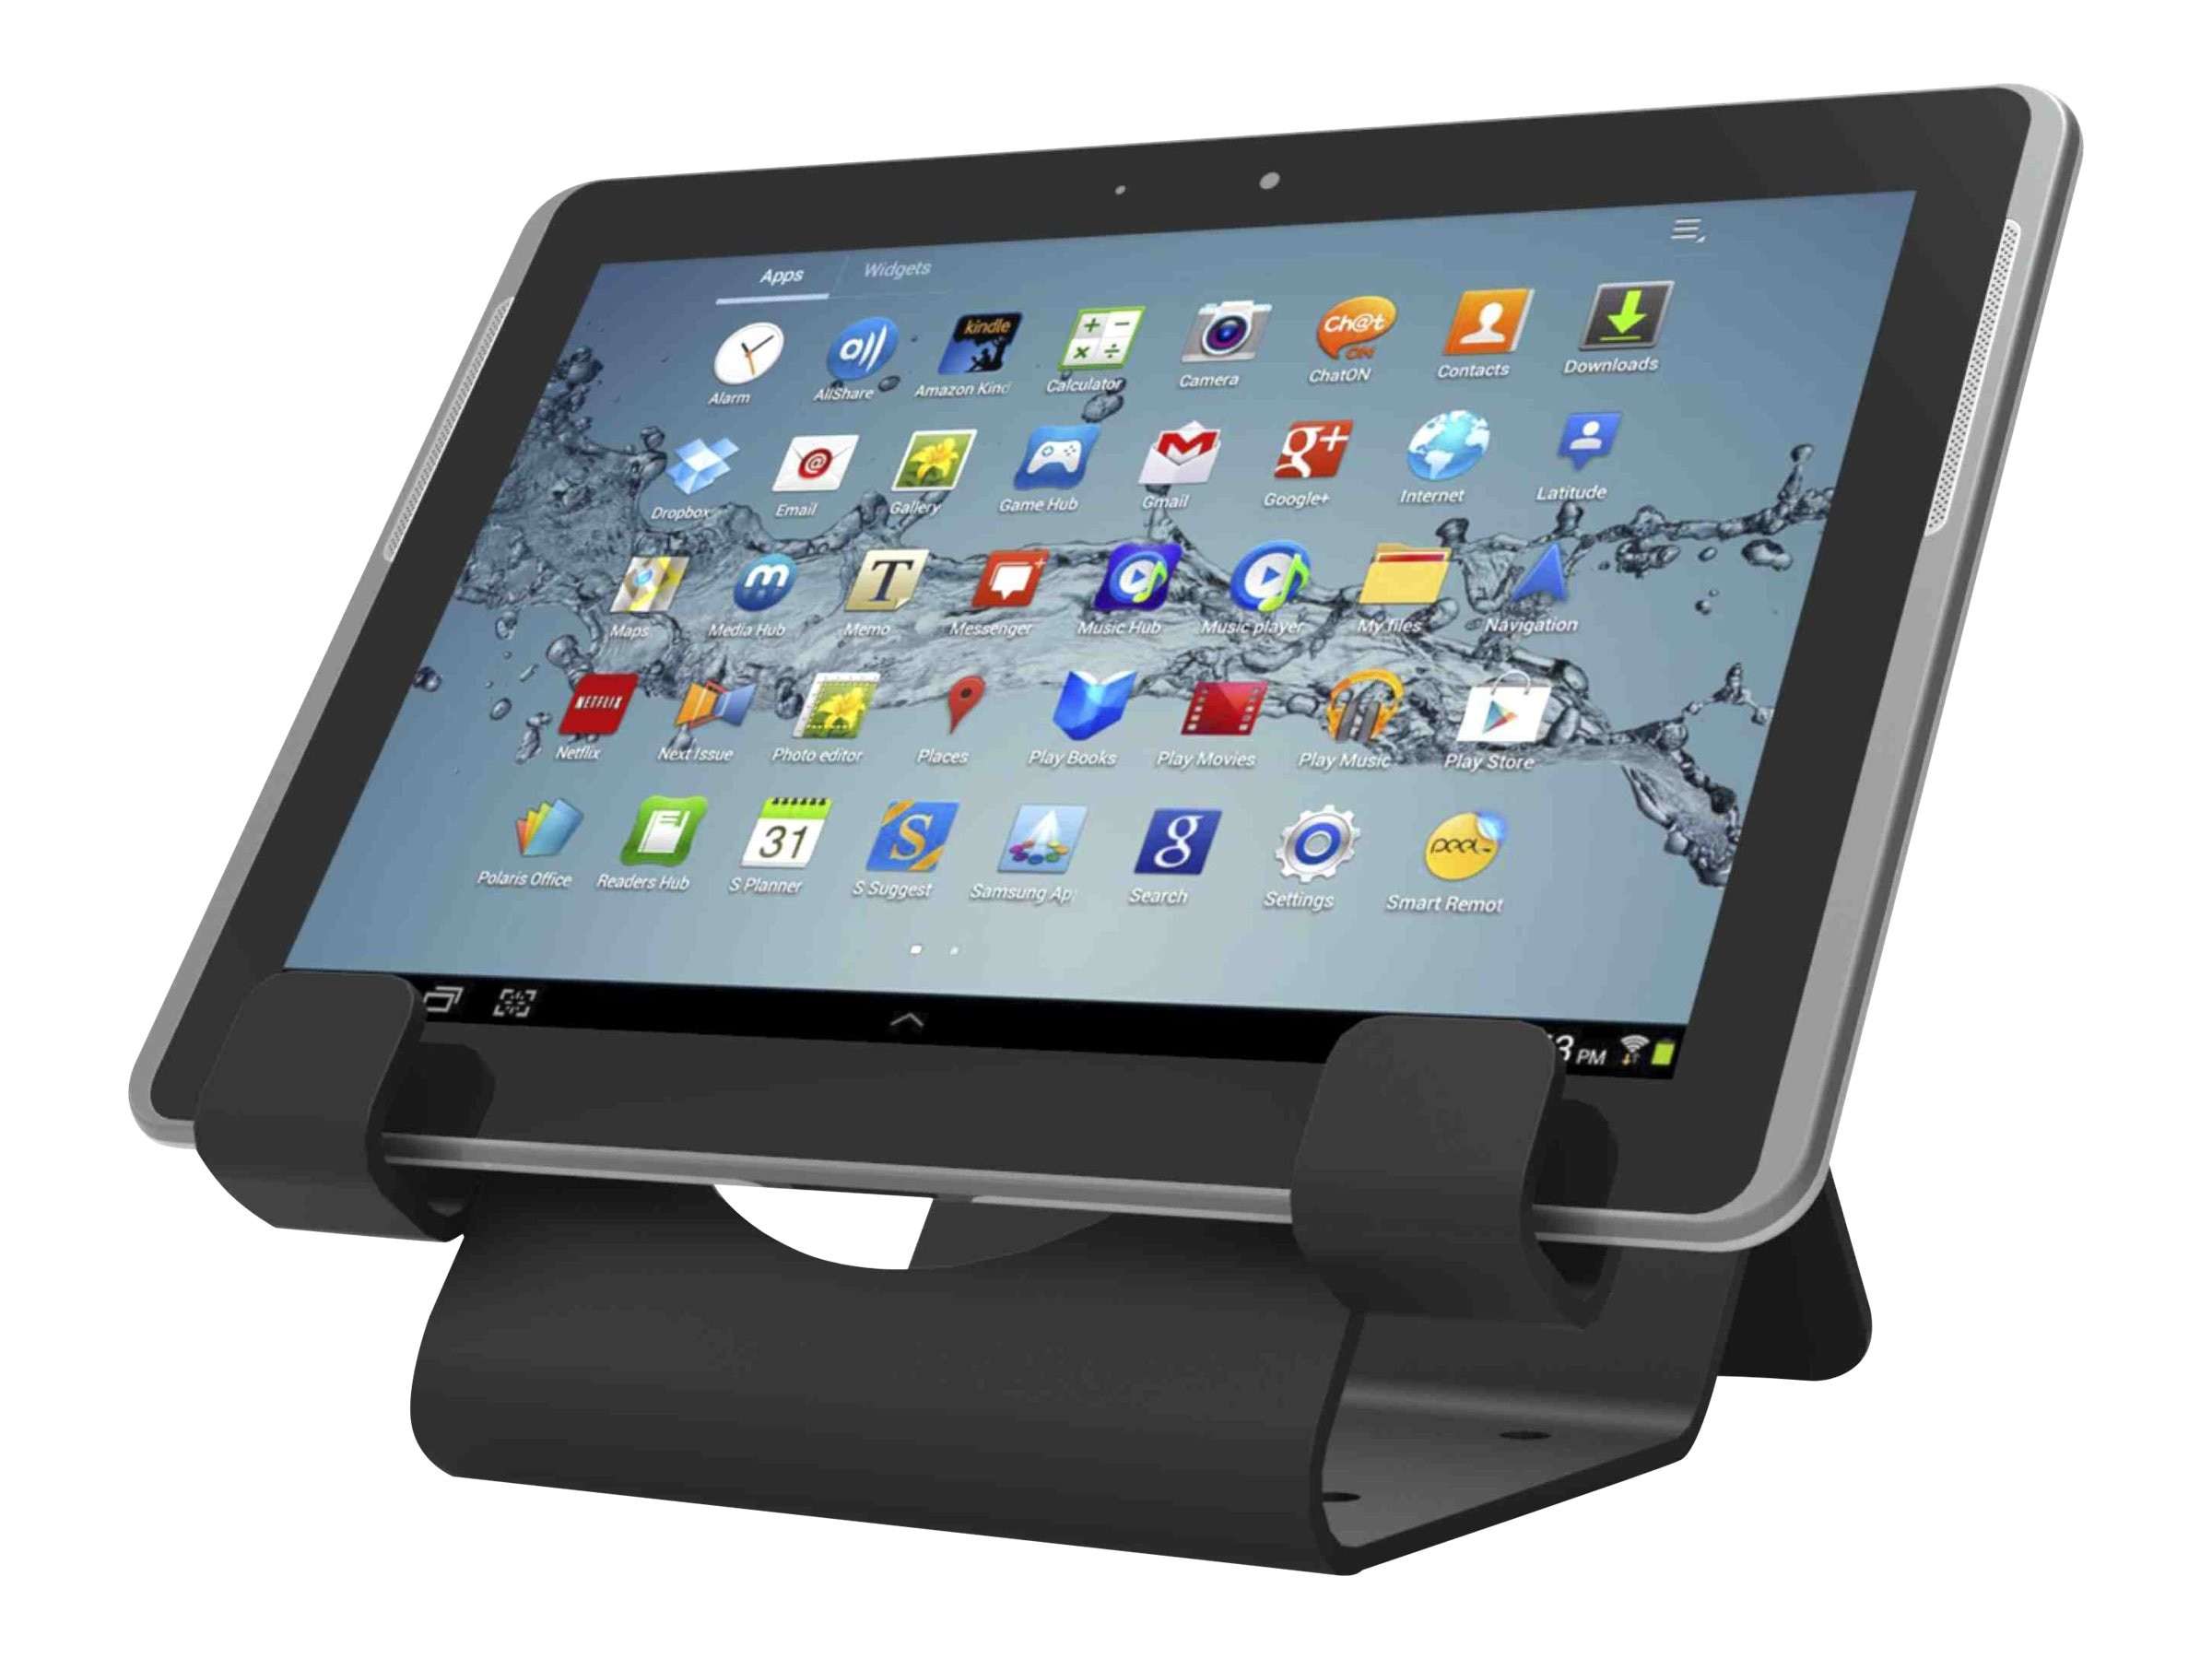 Compulocks Universal iPad and Tablet Security Holder, Black, CL12UTHBB